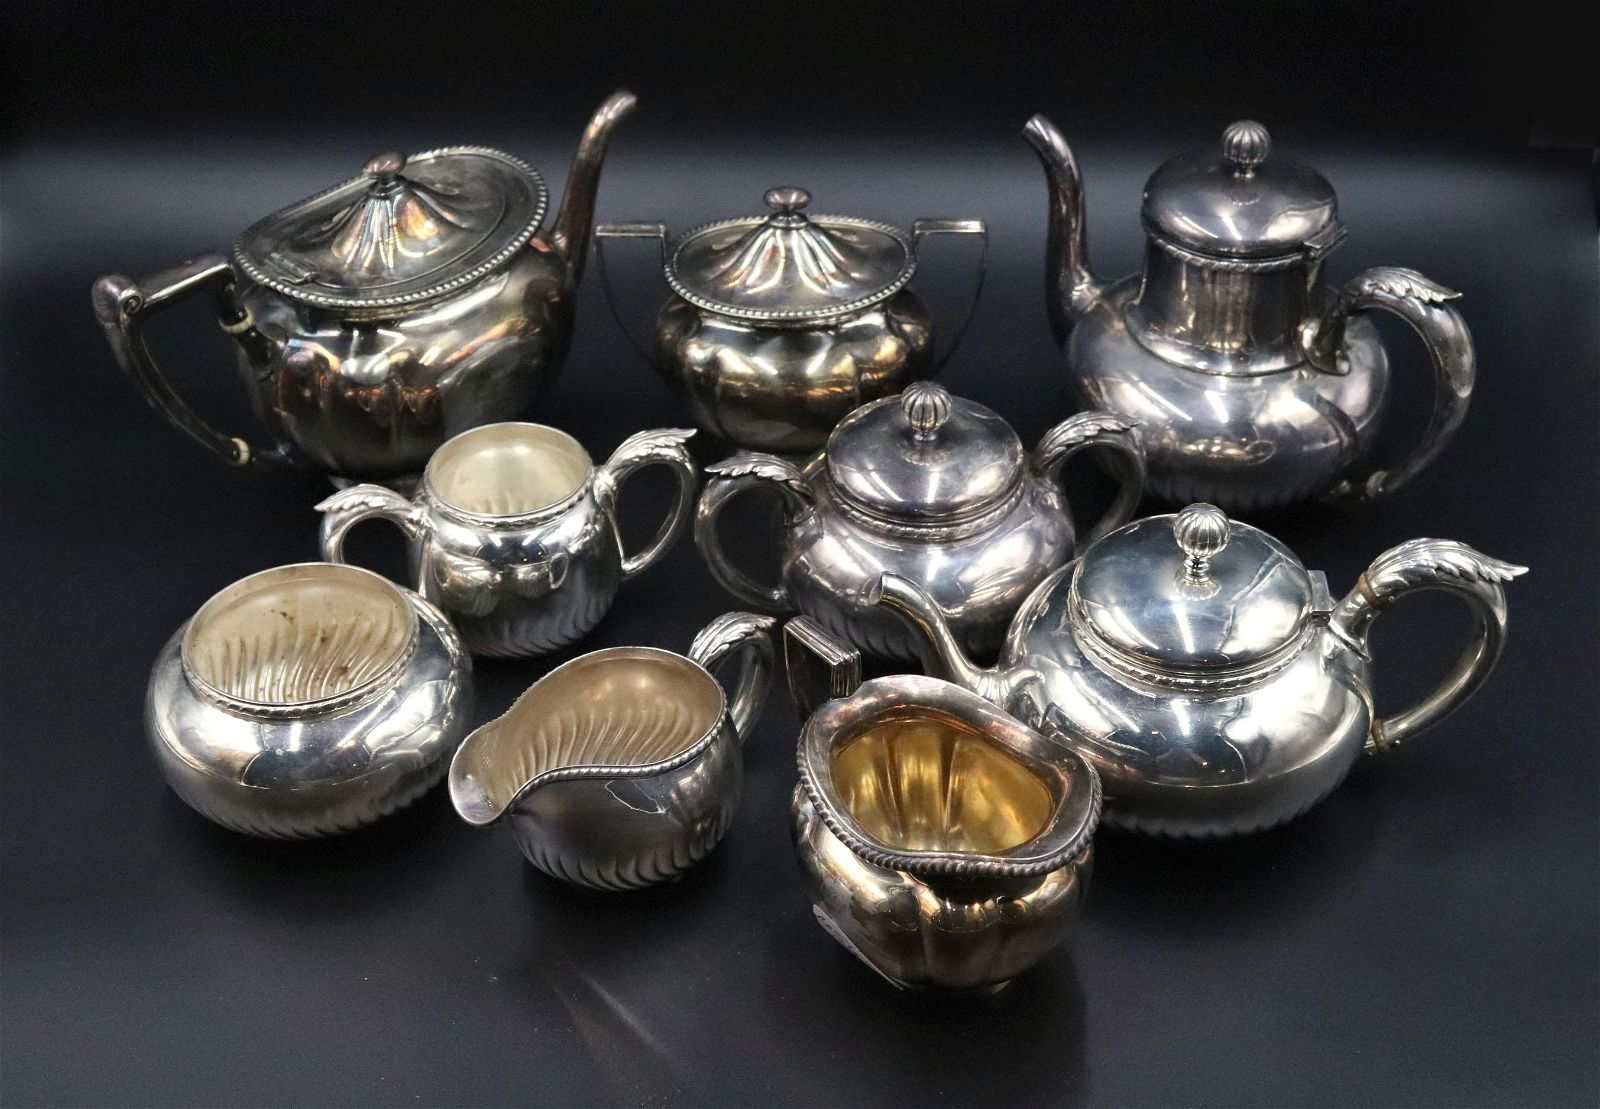 Two Gorham Silver Plated Tea Sets